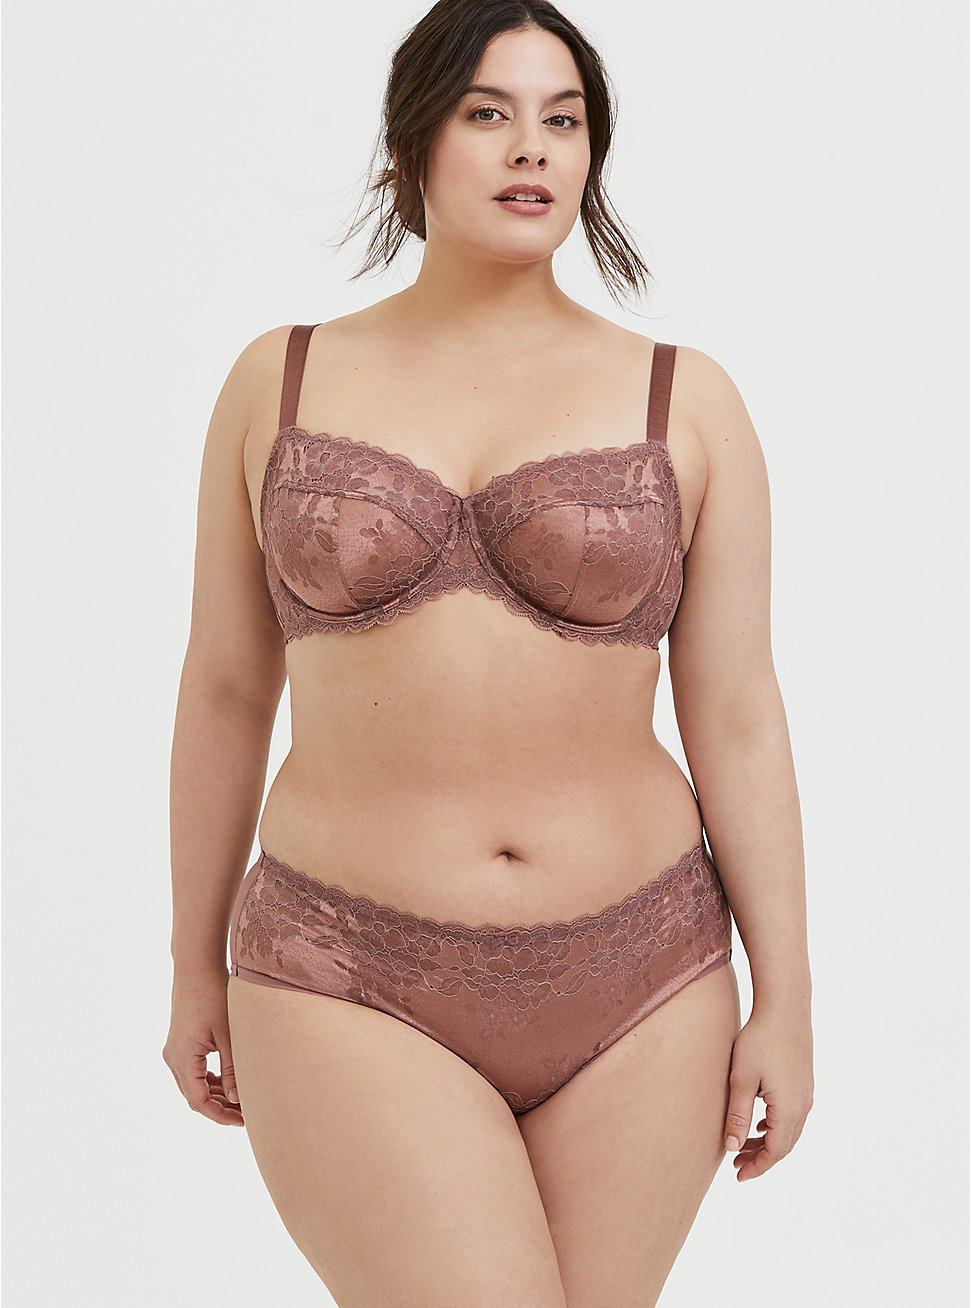 Walnut Lace Unlined Full Coverage Bra and Hipster Panty, , hi-res